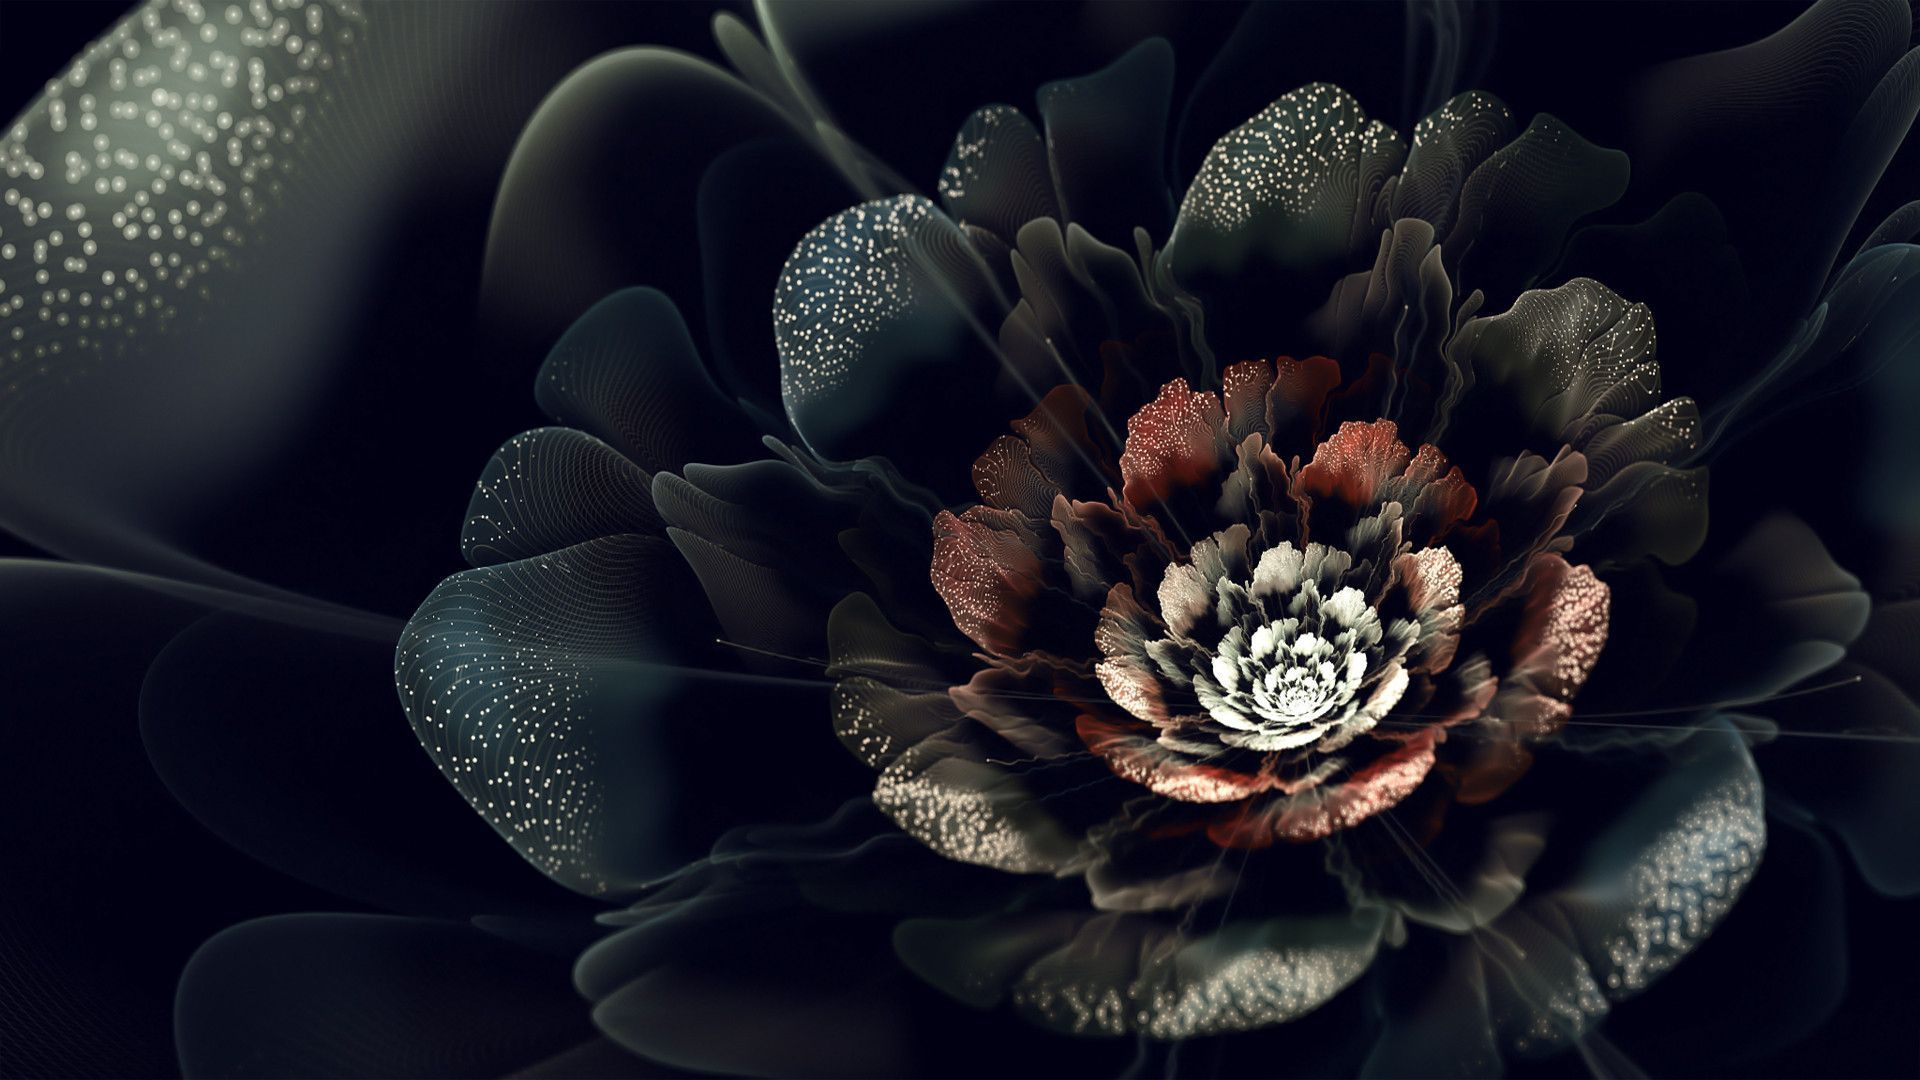 Black Flowers Hd Wallpapers Top Free Black Flowers Hd Backgrounds Wallpaperaccess